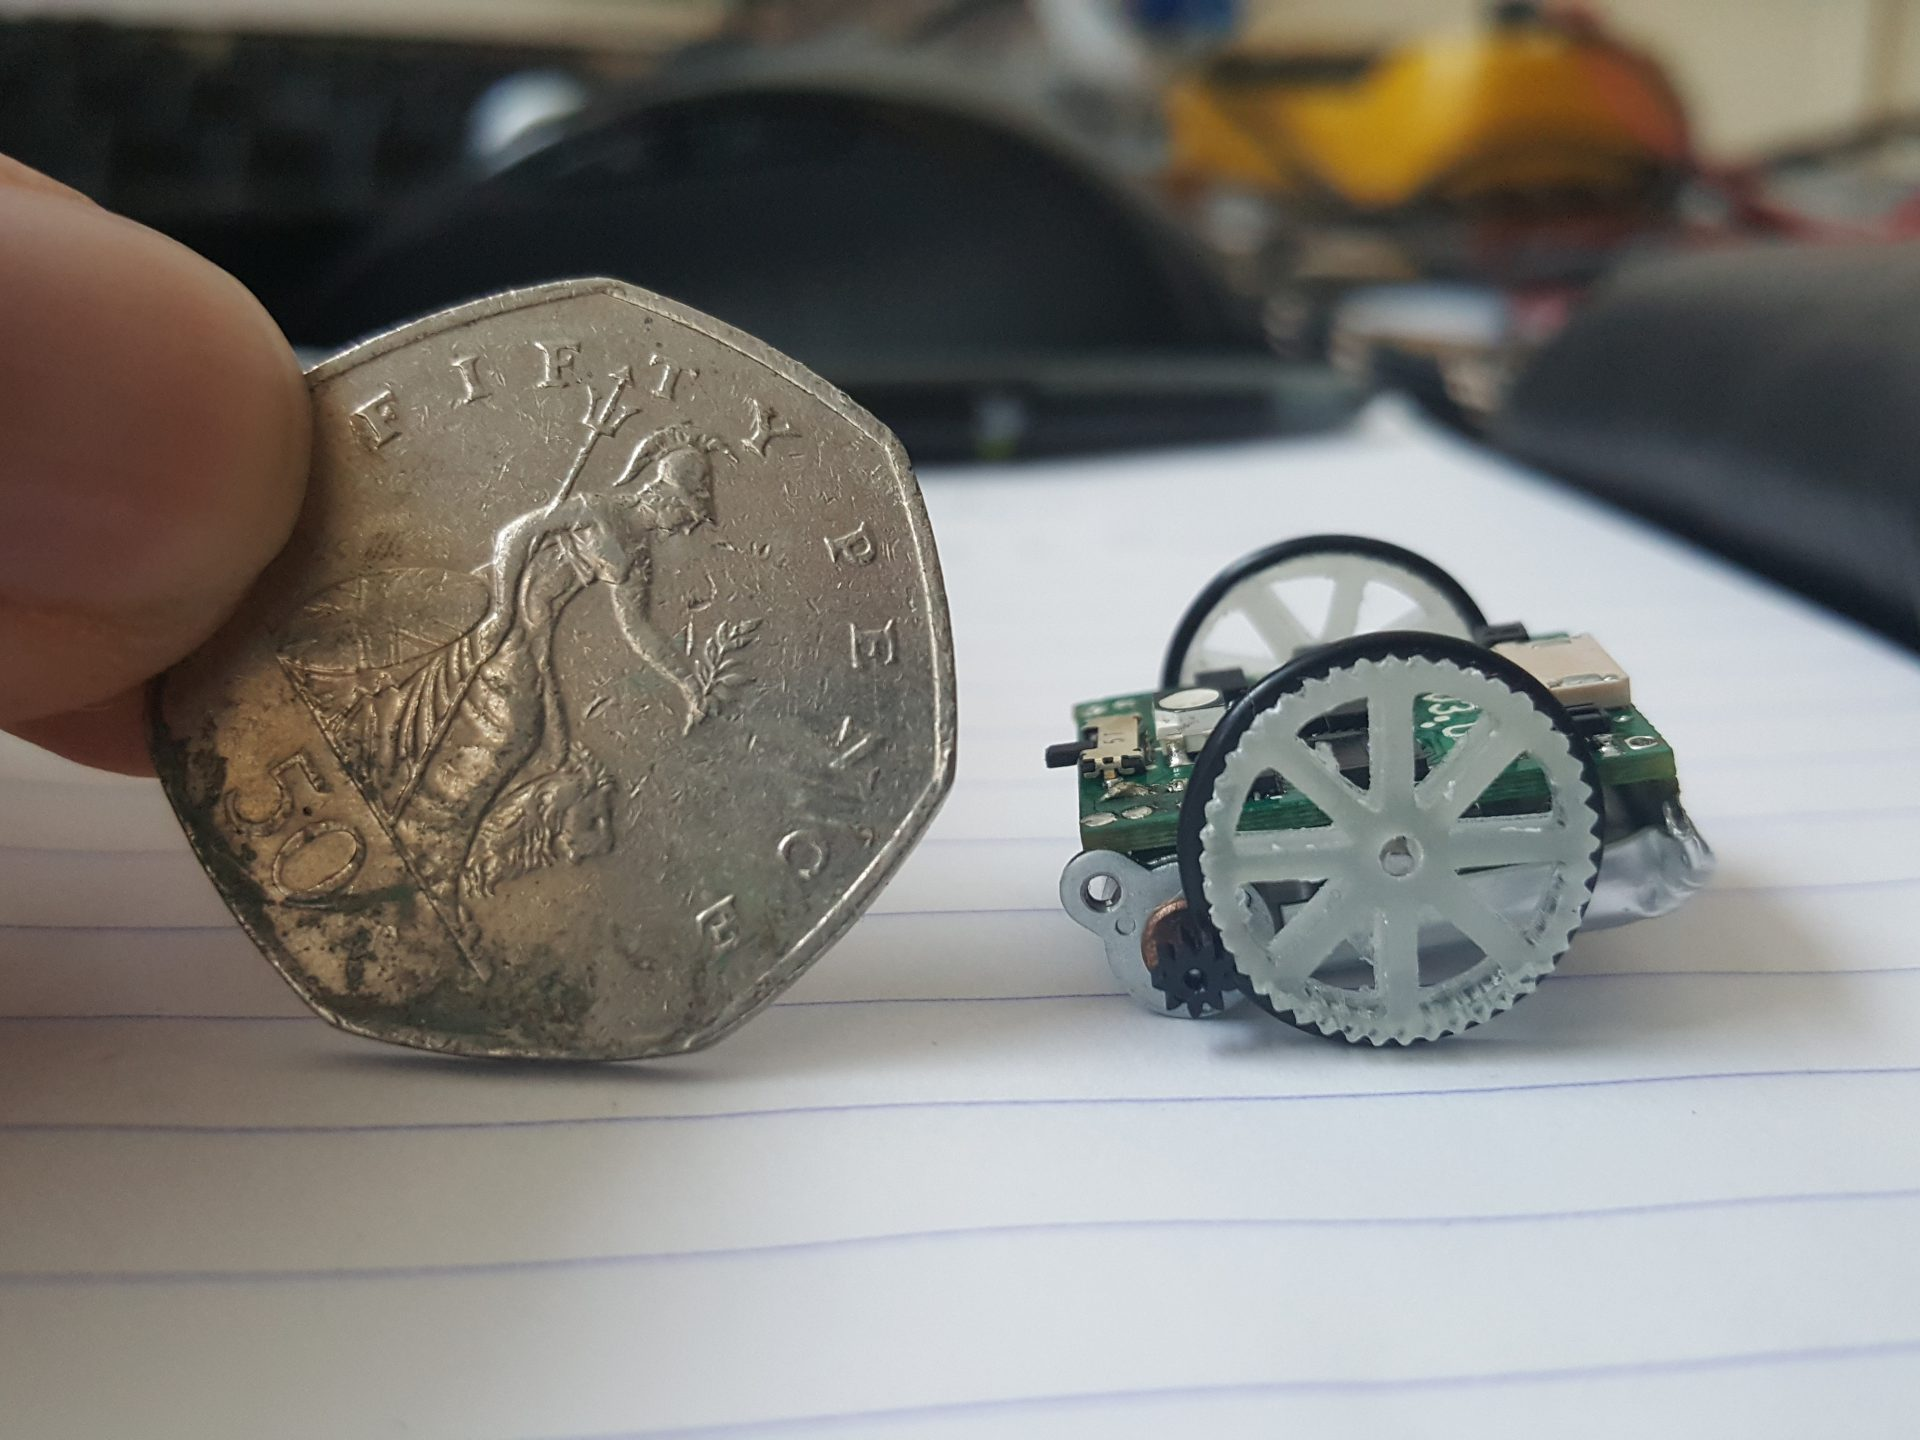 Micro Robot: with 50 pence